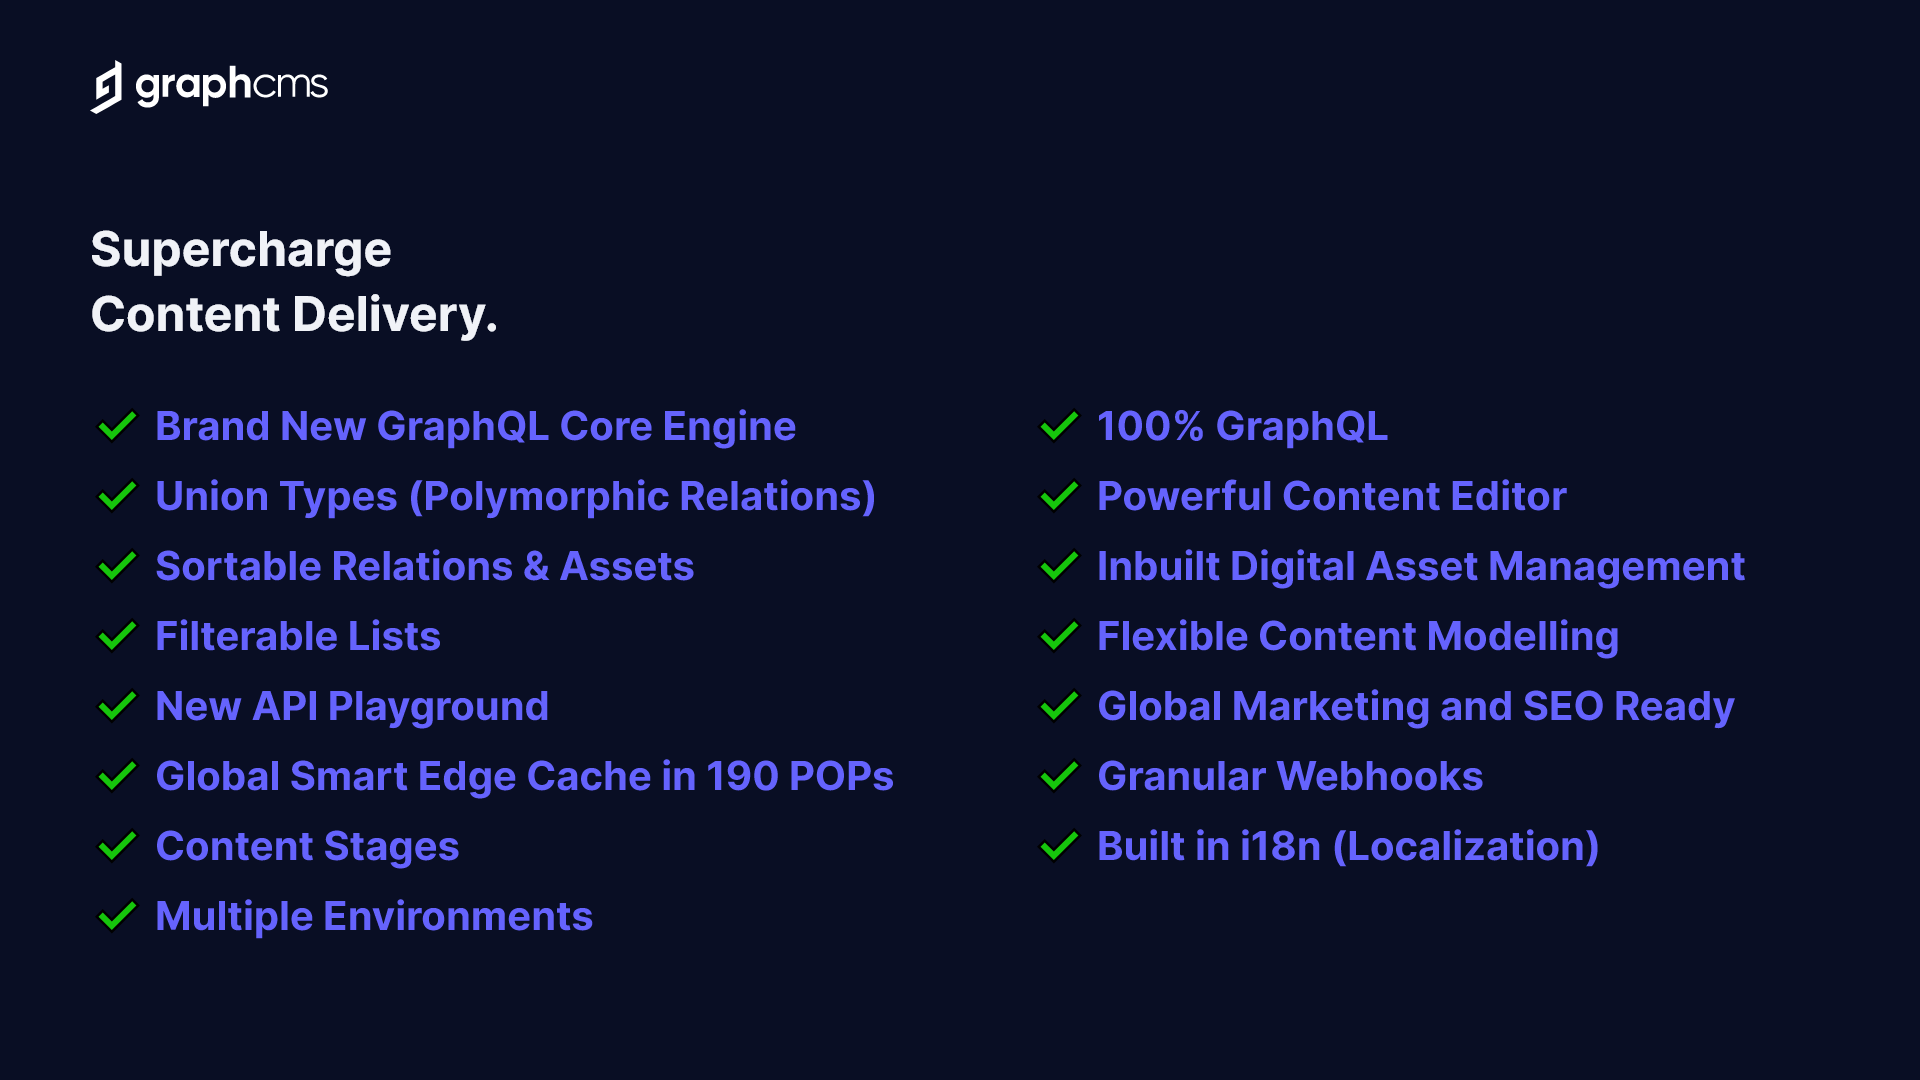 GraphCMS comes with enterprise-tested features, including global caching, localization, union types, content stages, multiple environments, granular webhooks, inbuilt asset management, and more.